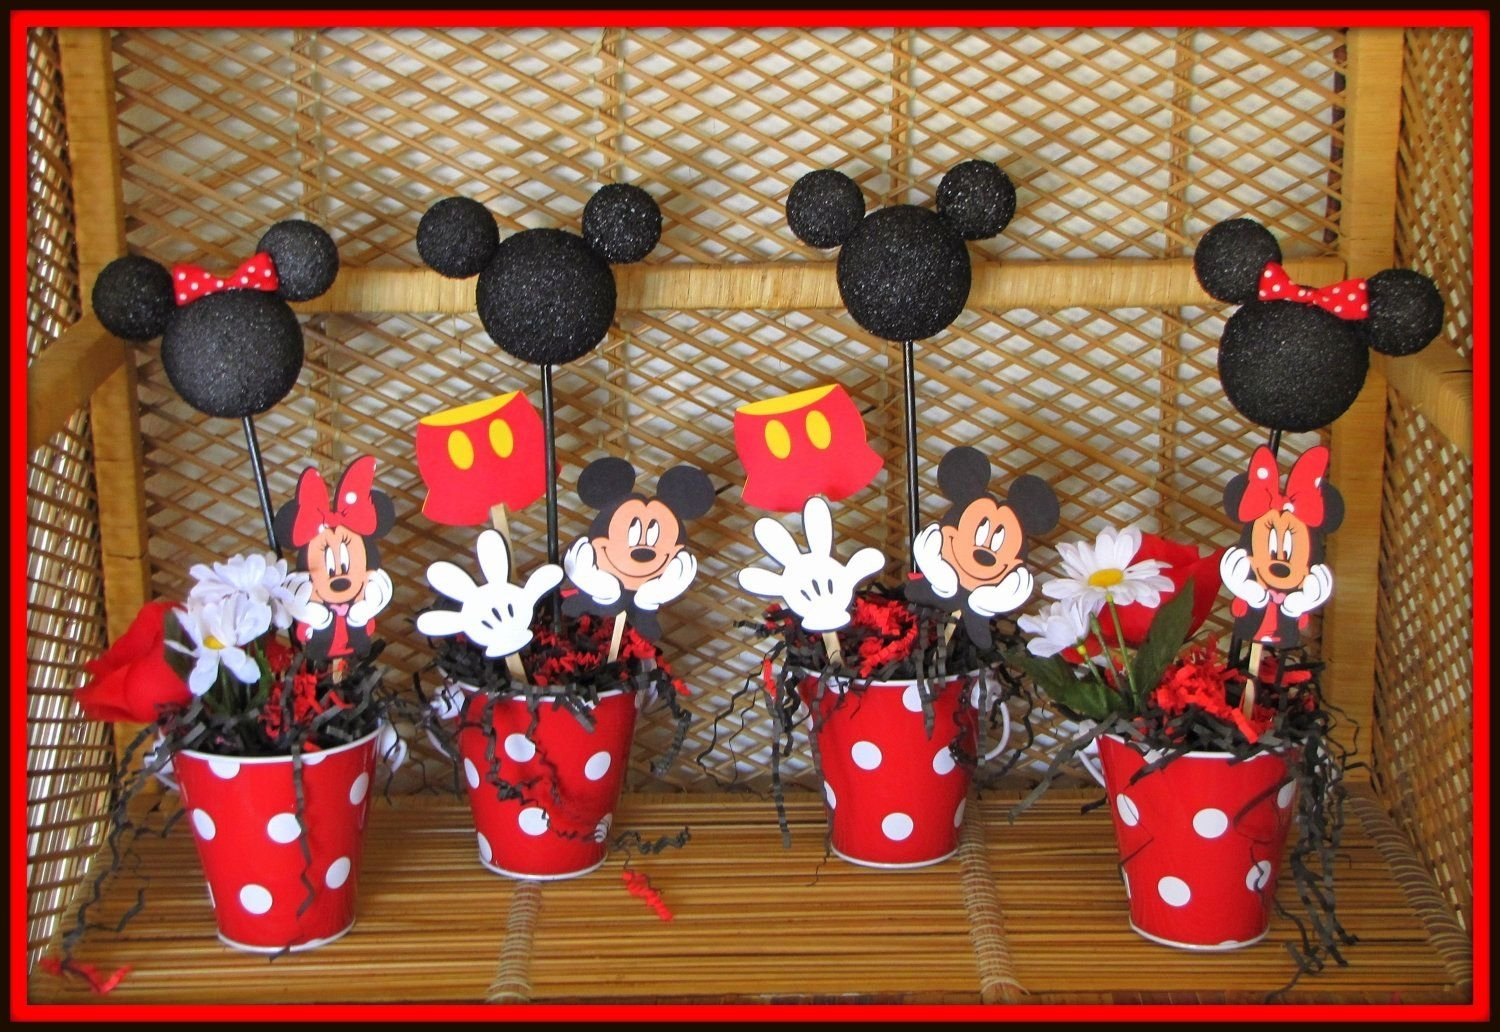 10 Lovely Mickey Mouse Party Ideas Pinterest minnie and mickey party decorations photos mickey mouse birthday